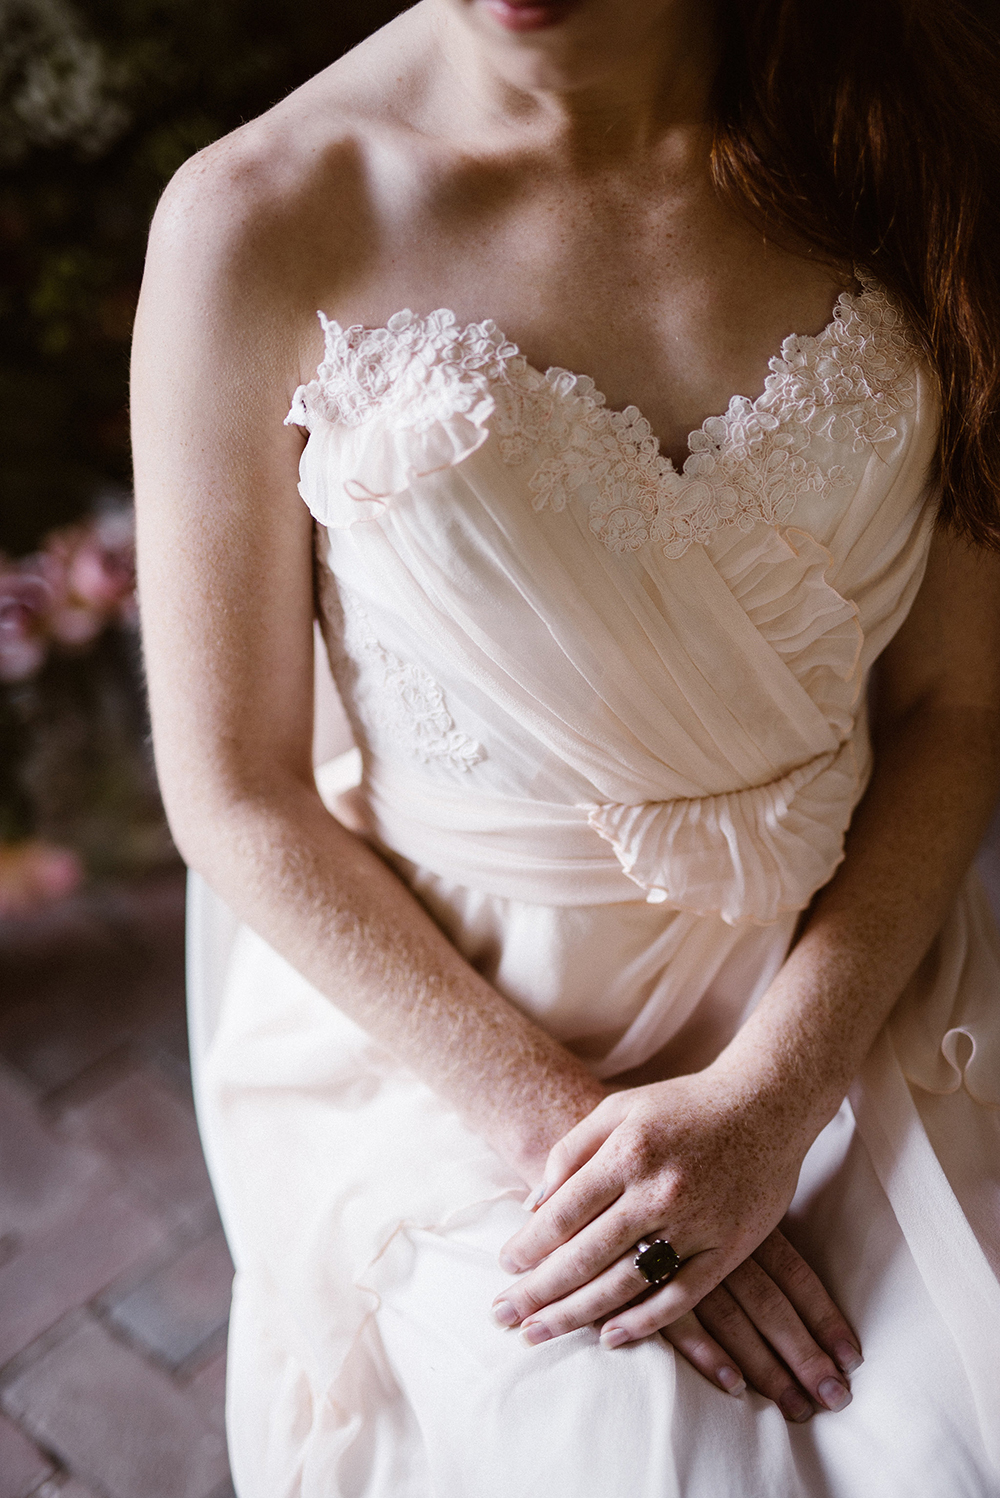 wedding gown details - photo by Lindsay Hackney Photography http://ruffledblog.com/the-ultimate-garden-lover-bridal-inspiration